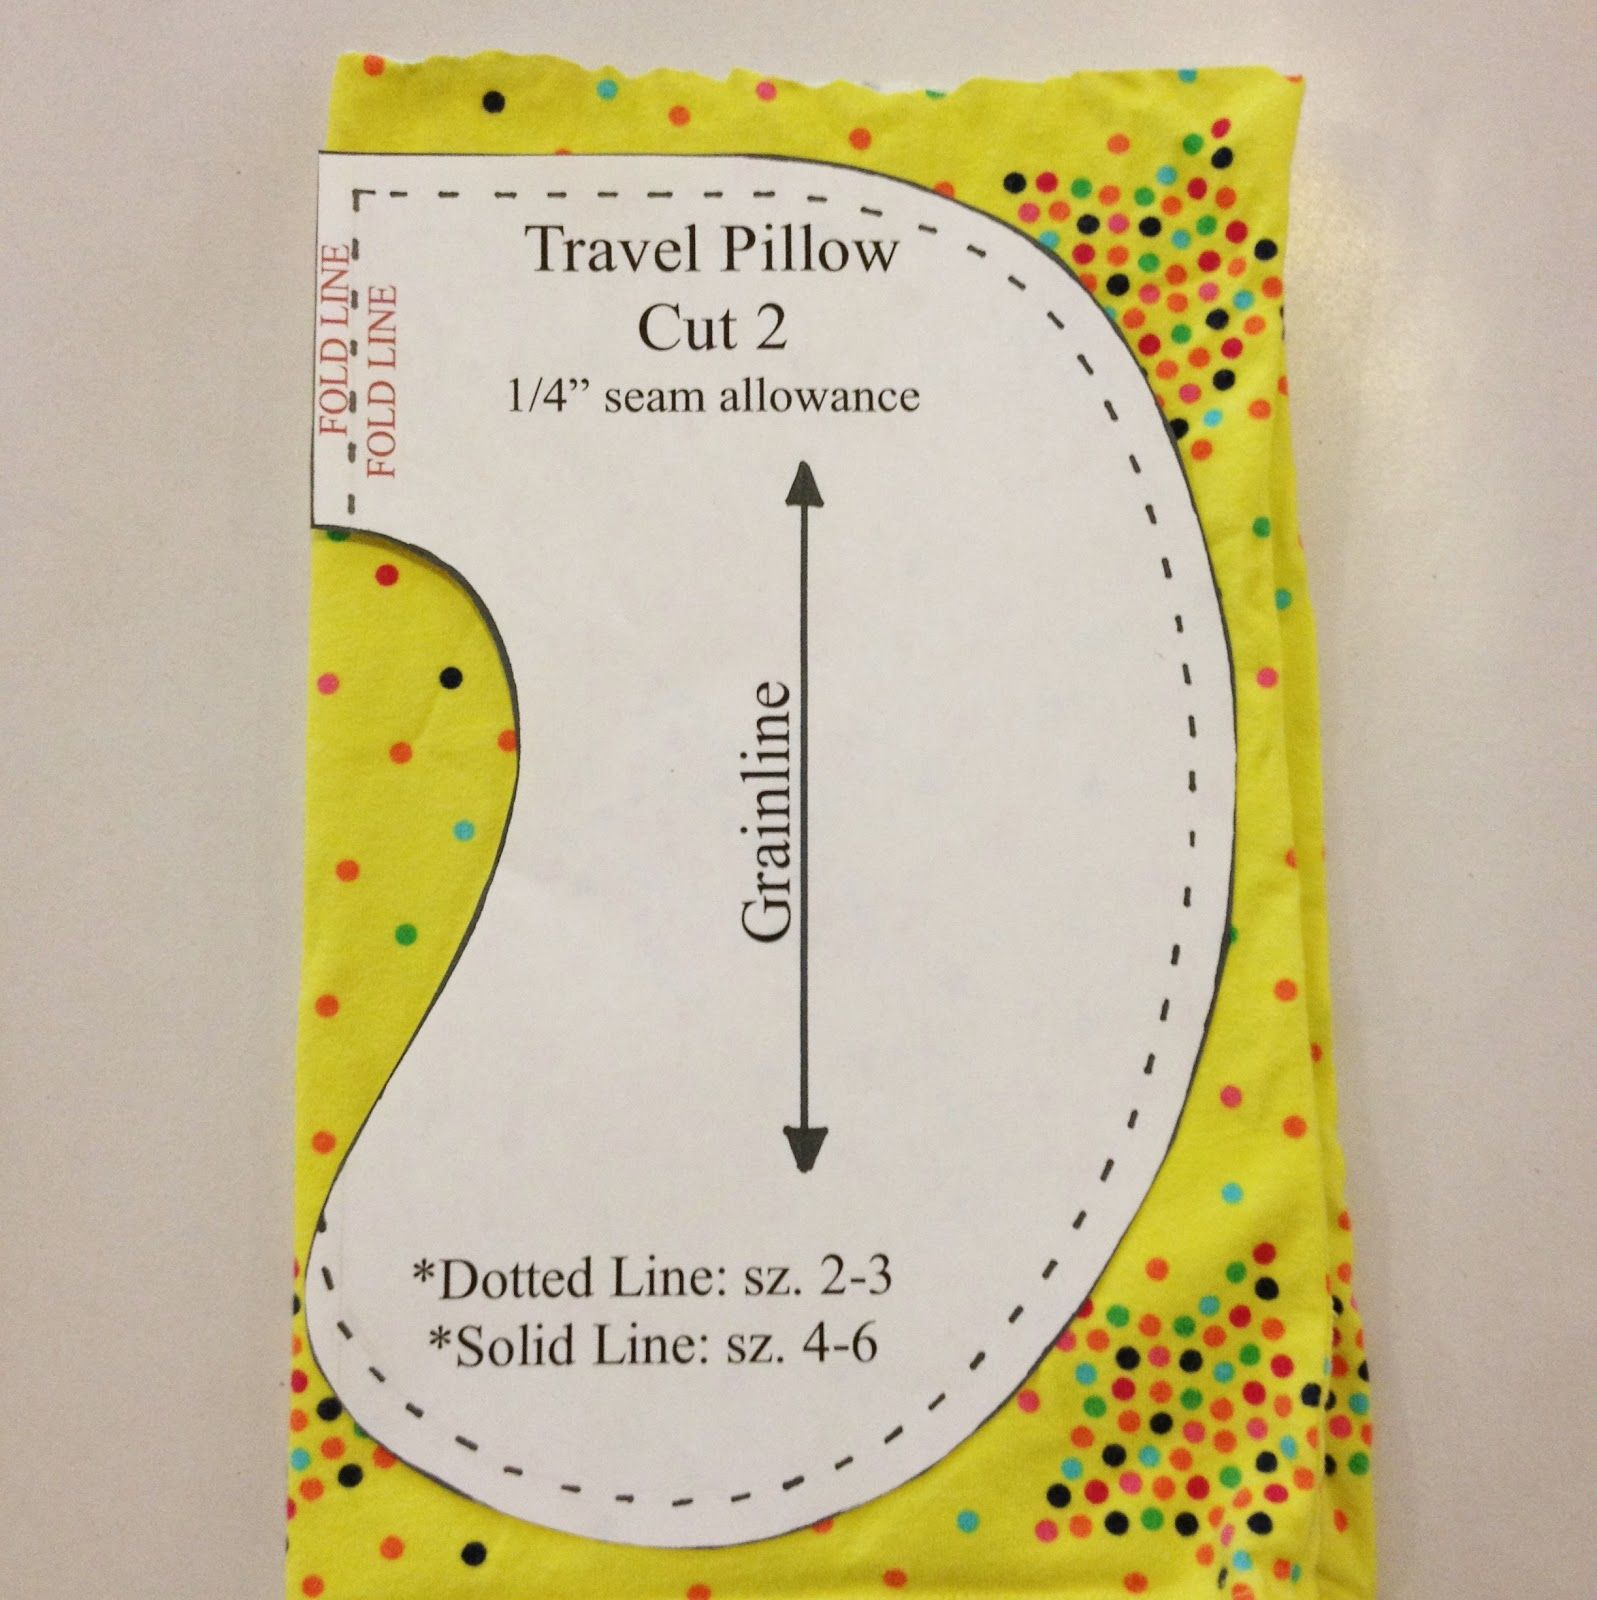 Pin By Pj Faso On Sewing Sewing Sewing Projects For Kids Sewing Patterns